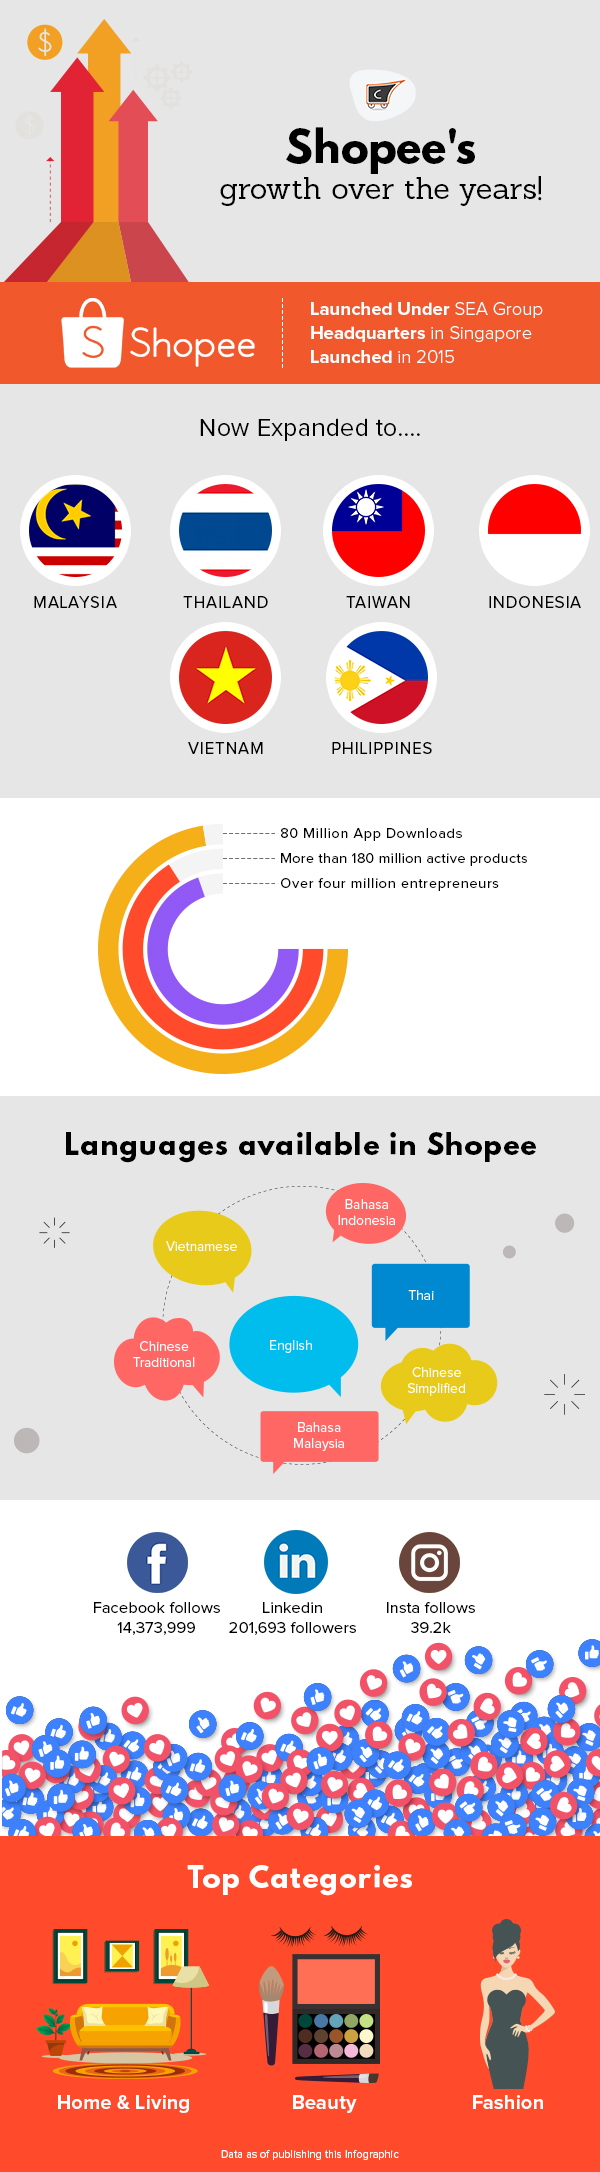 INFO GRAPHIC Shopee's growth over the years   CedCommerce Blog